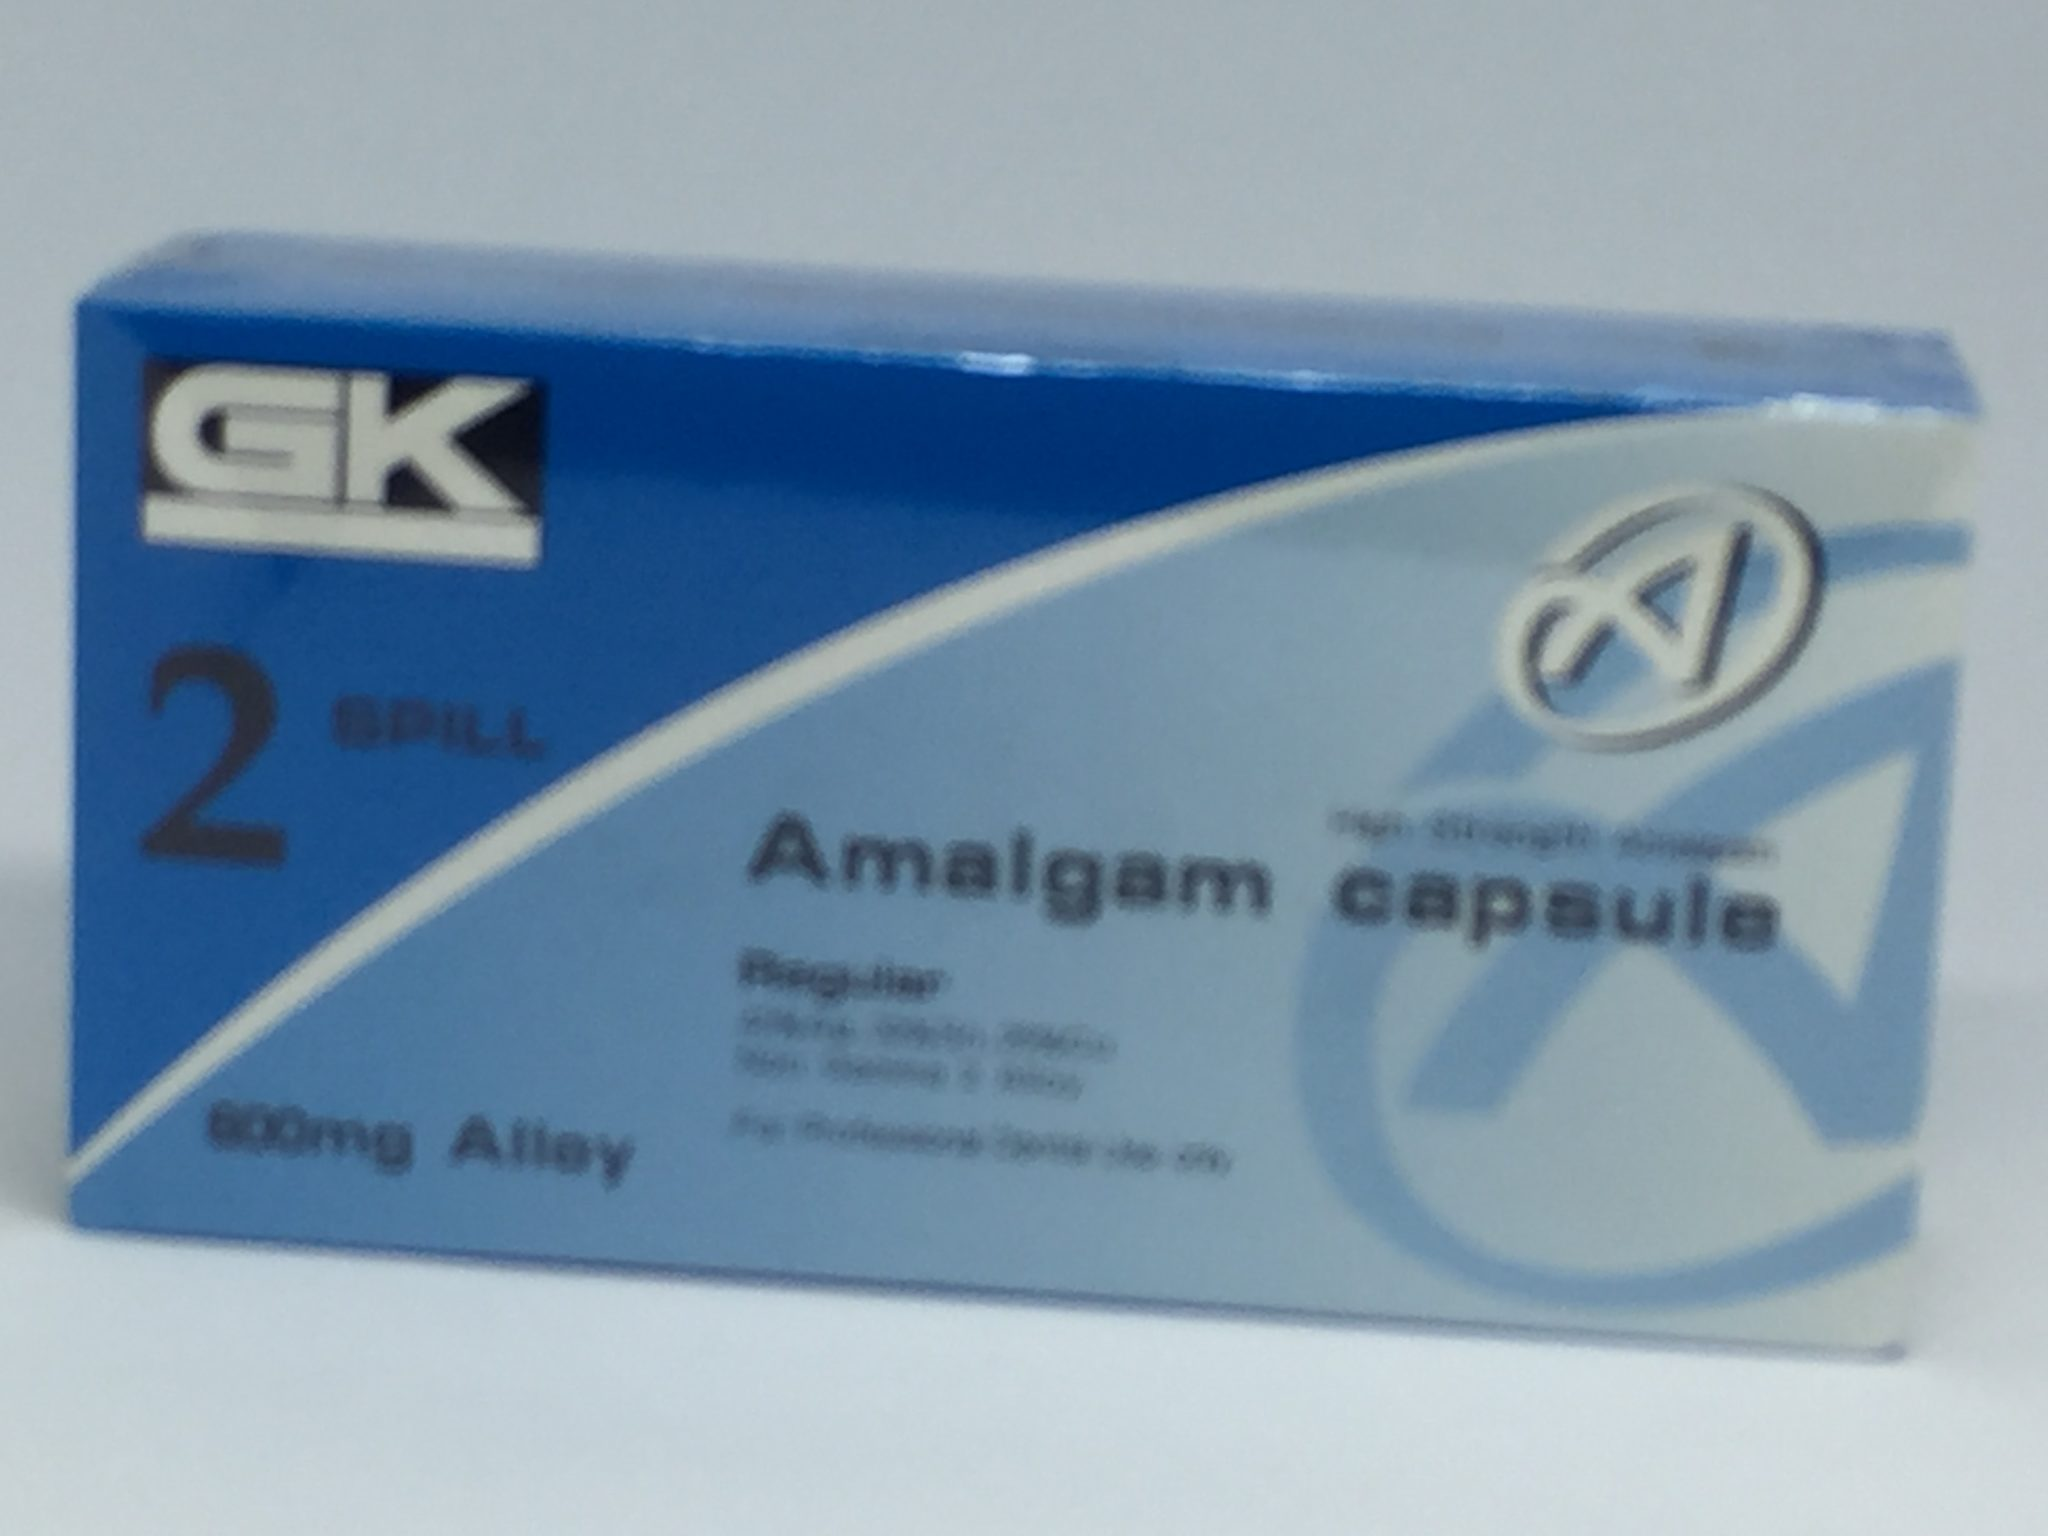 Amalgam Capsules now available in Nigeria. Place your order now on Clinicaid.com.ng